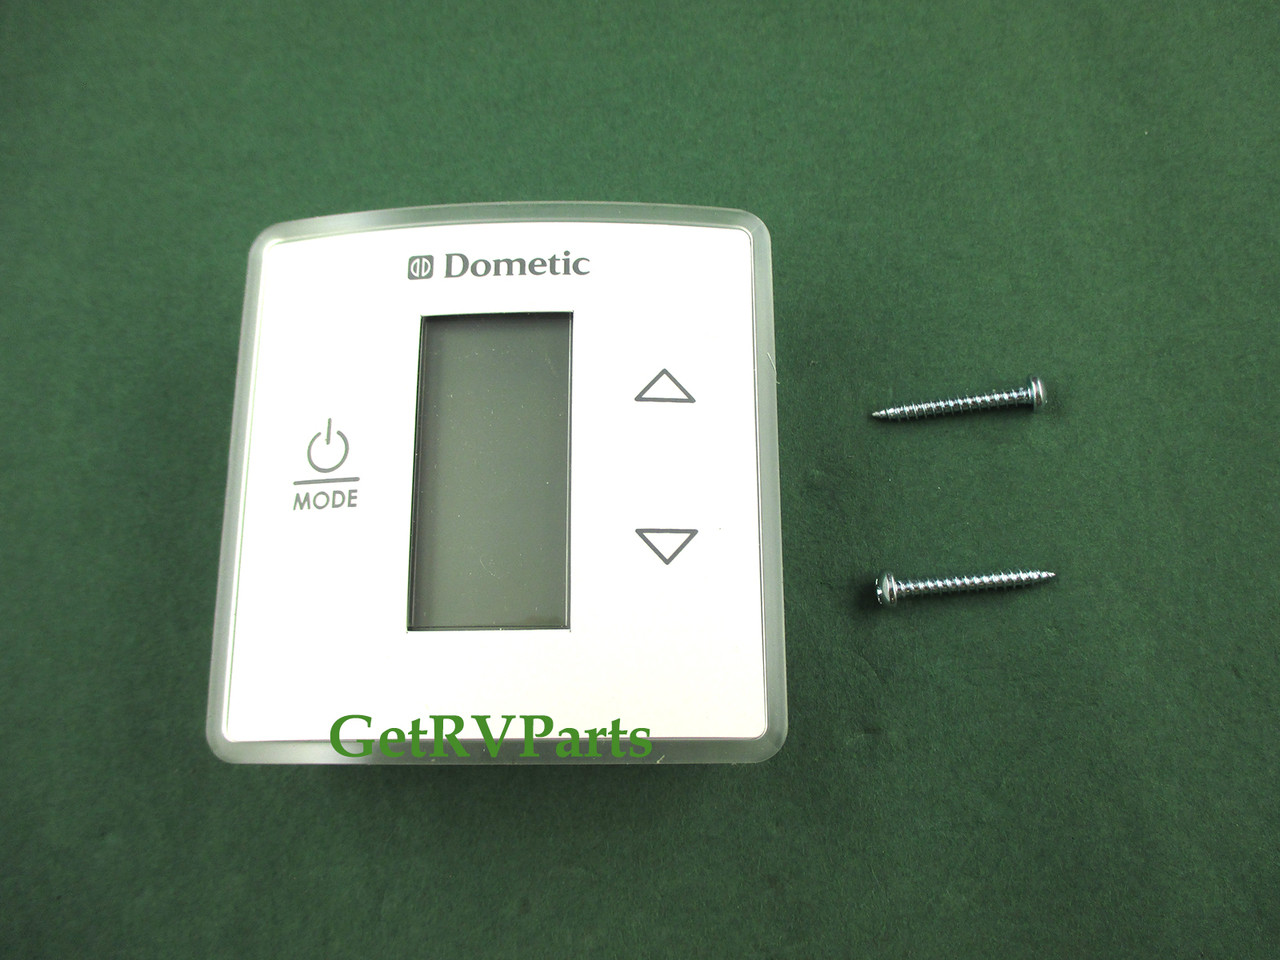 dometic 331625000 rv air conditioner cool furnace thermostat image 1 loading zoom [ 1280 x 960 Pixel ]